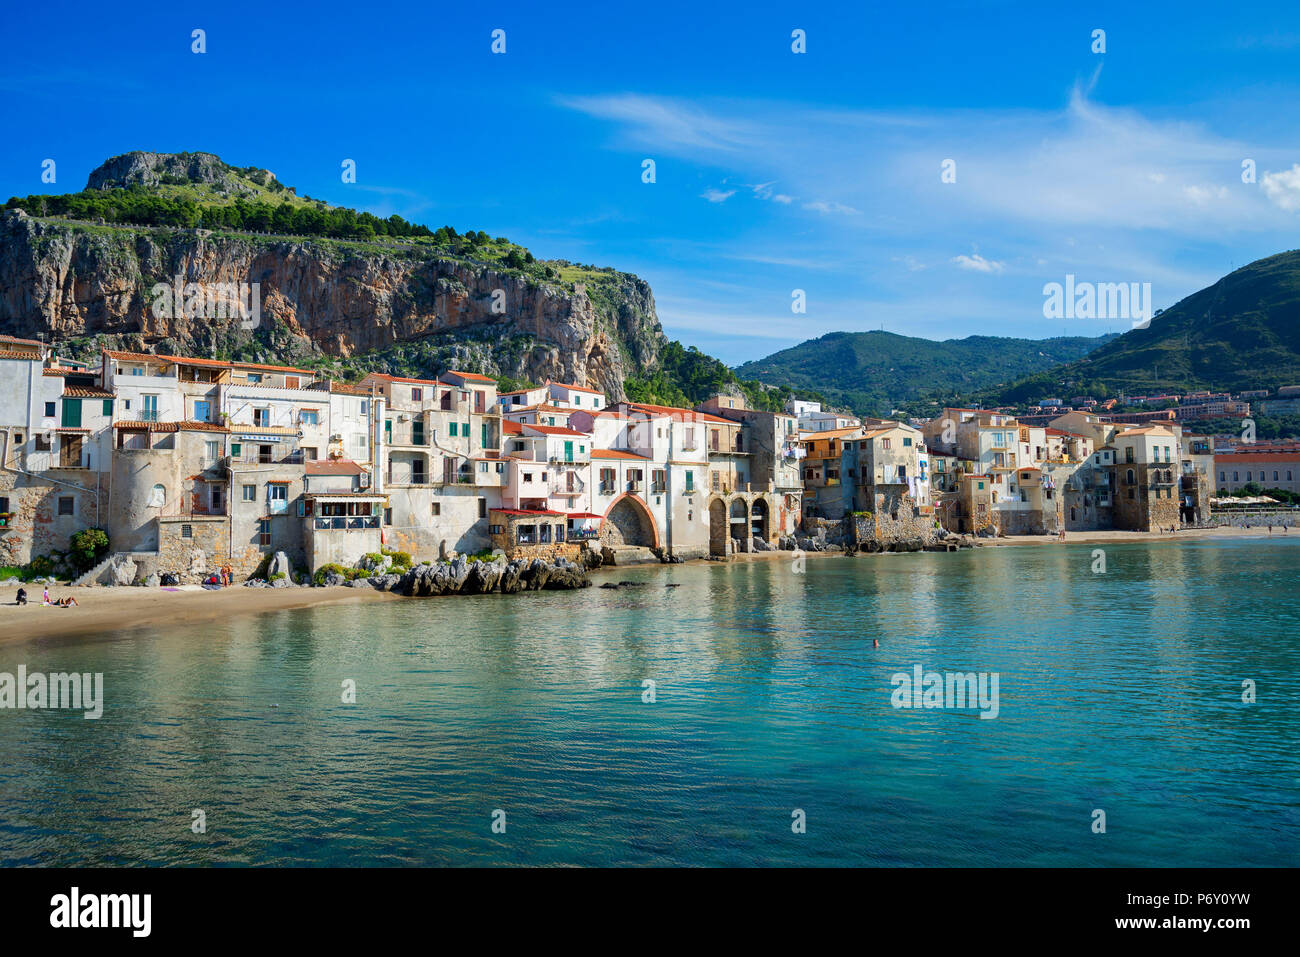 Traditional fishing boats and fishermens houses, Cefalu, Sicily, Italy, Europe - Stock Image